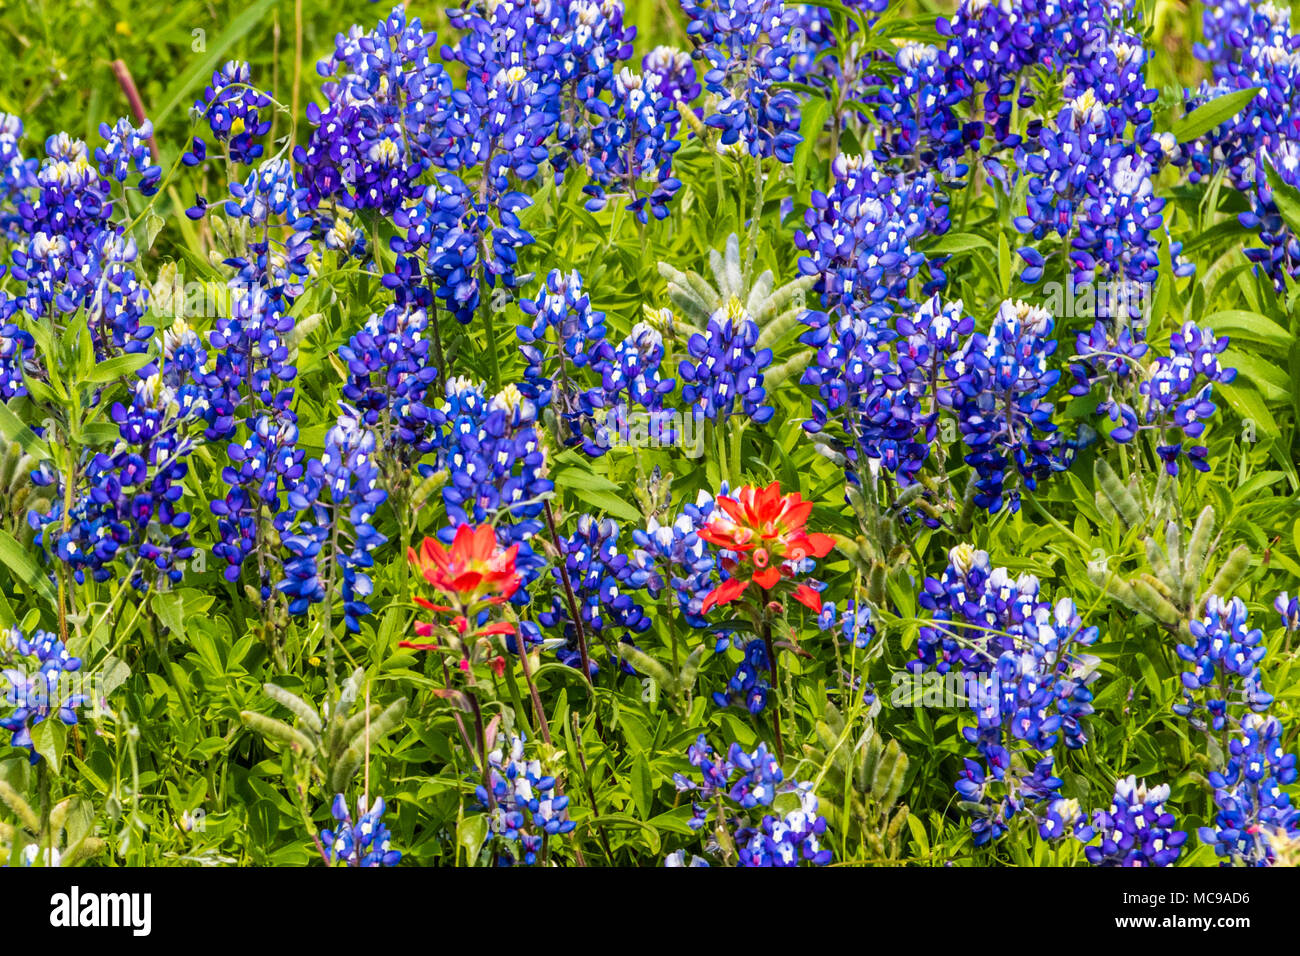 Texas Bluebonnets and Indian Paintbrush along Texas State Highway 105 between Navasota and Brenham. - Stock Image